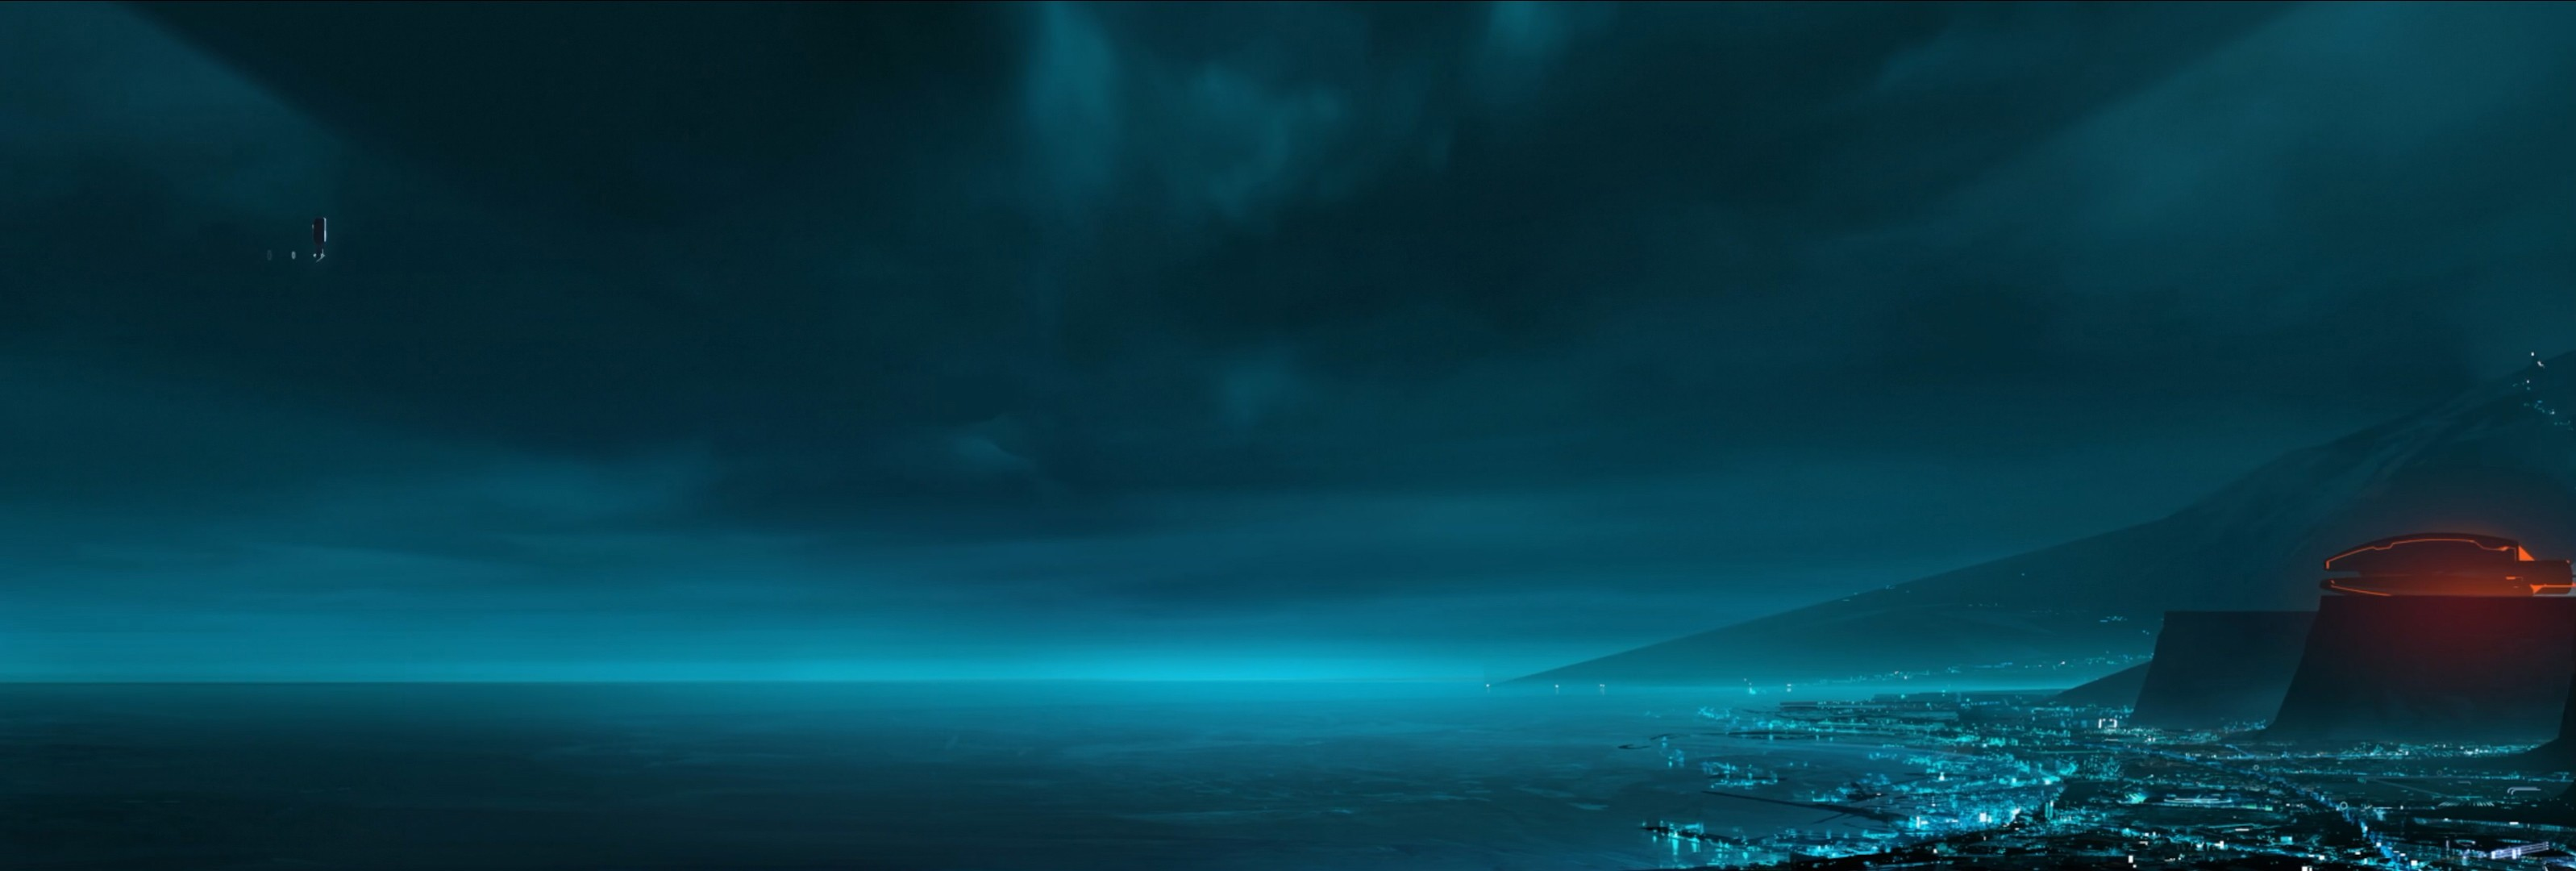 … tron wallpapers hd desktop and mobile backgrounds …